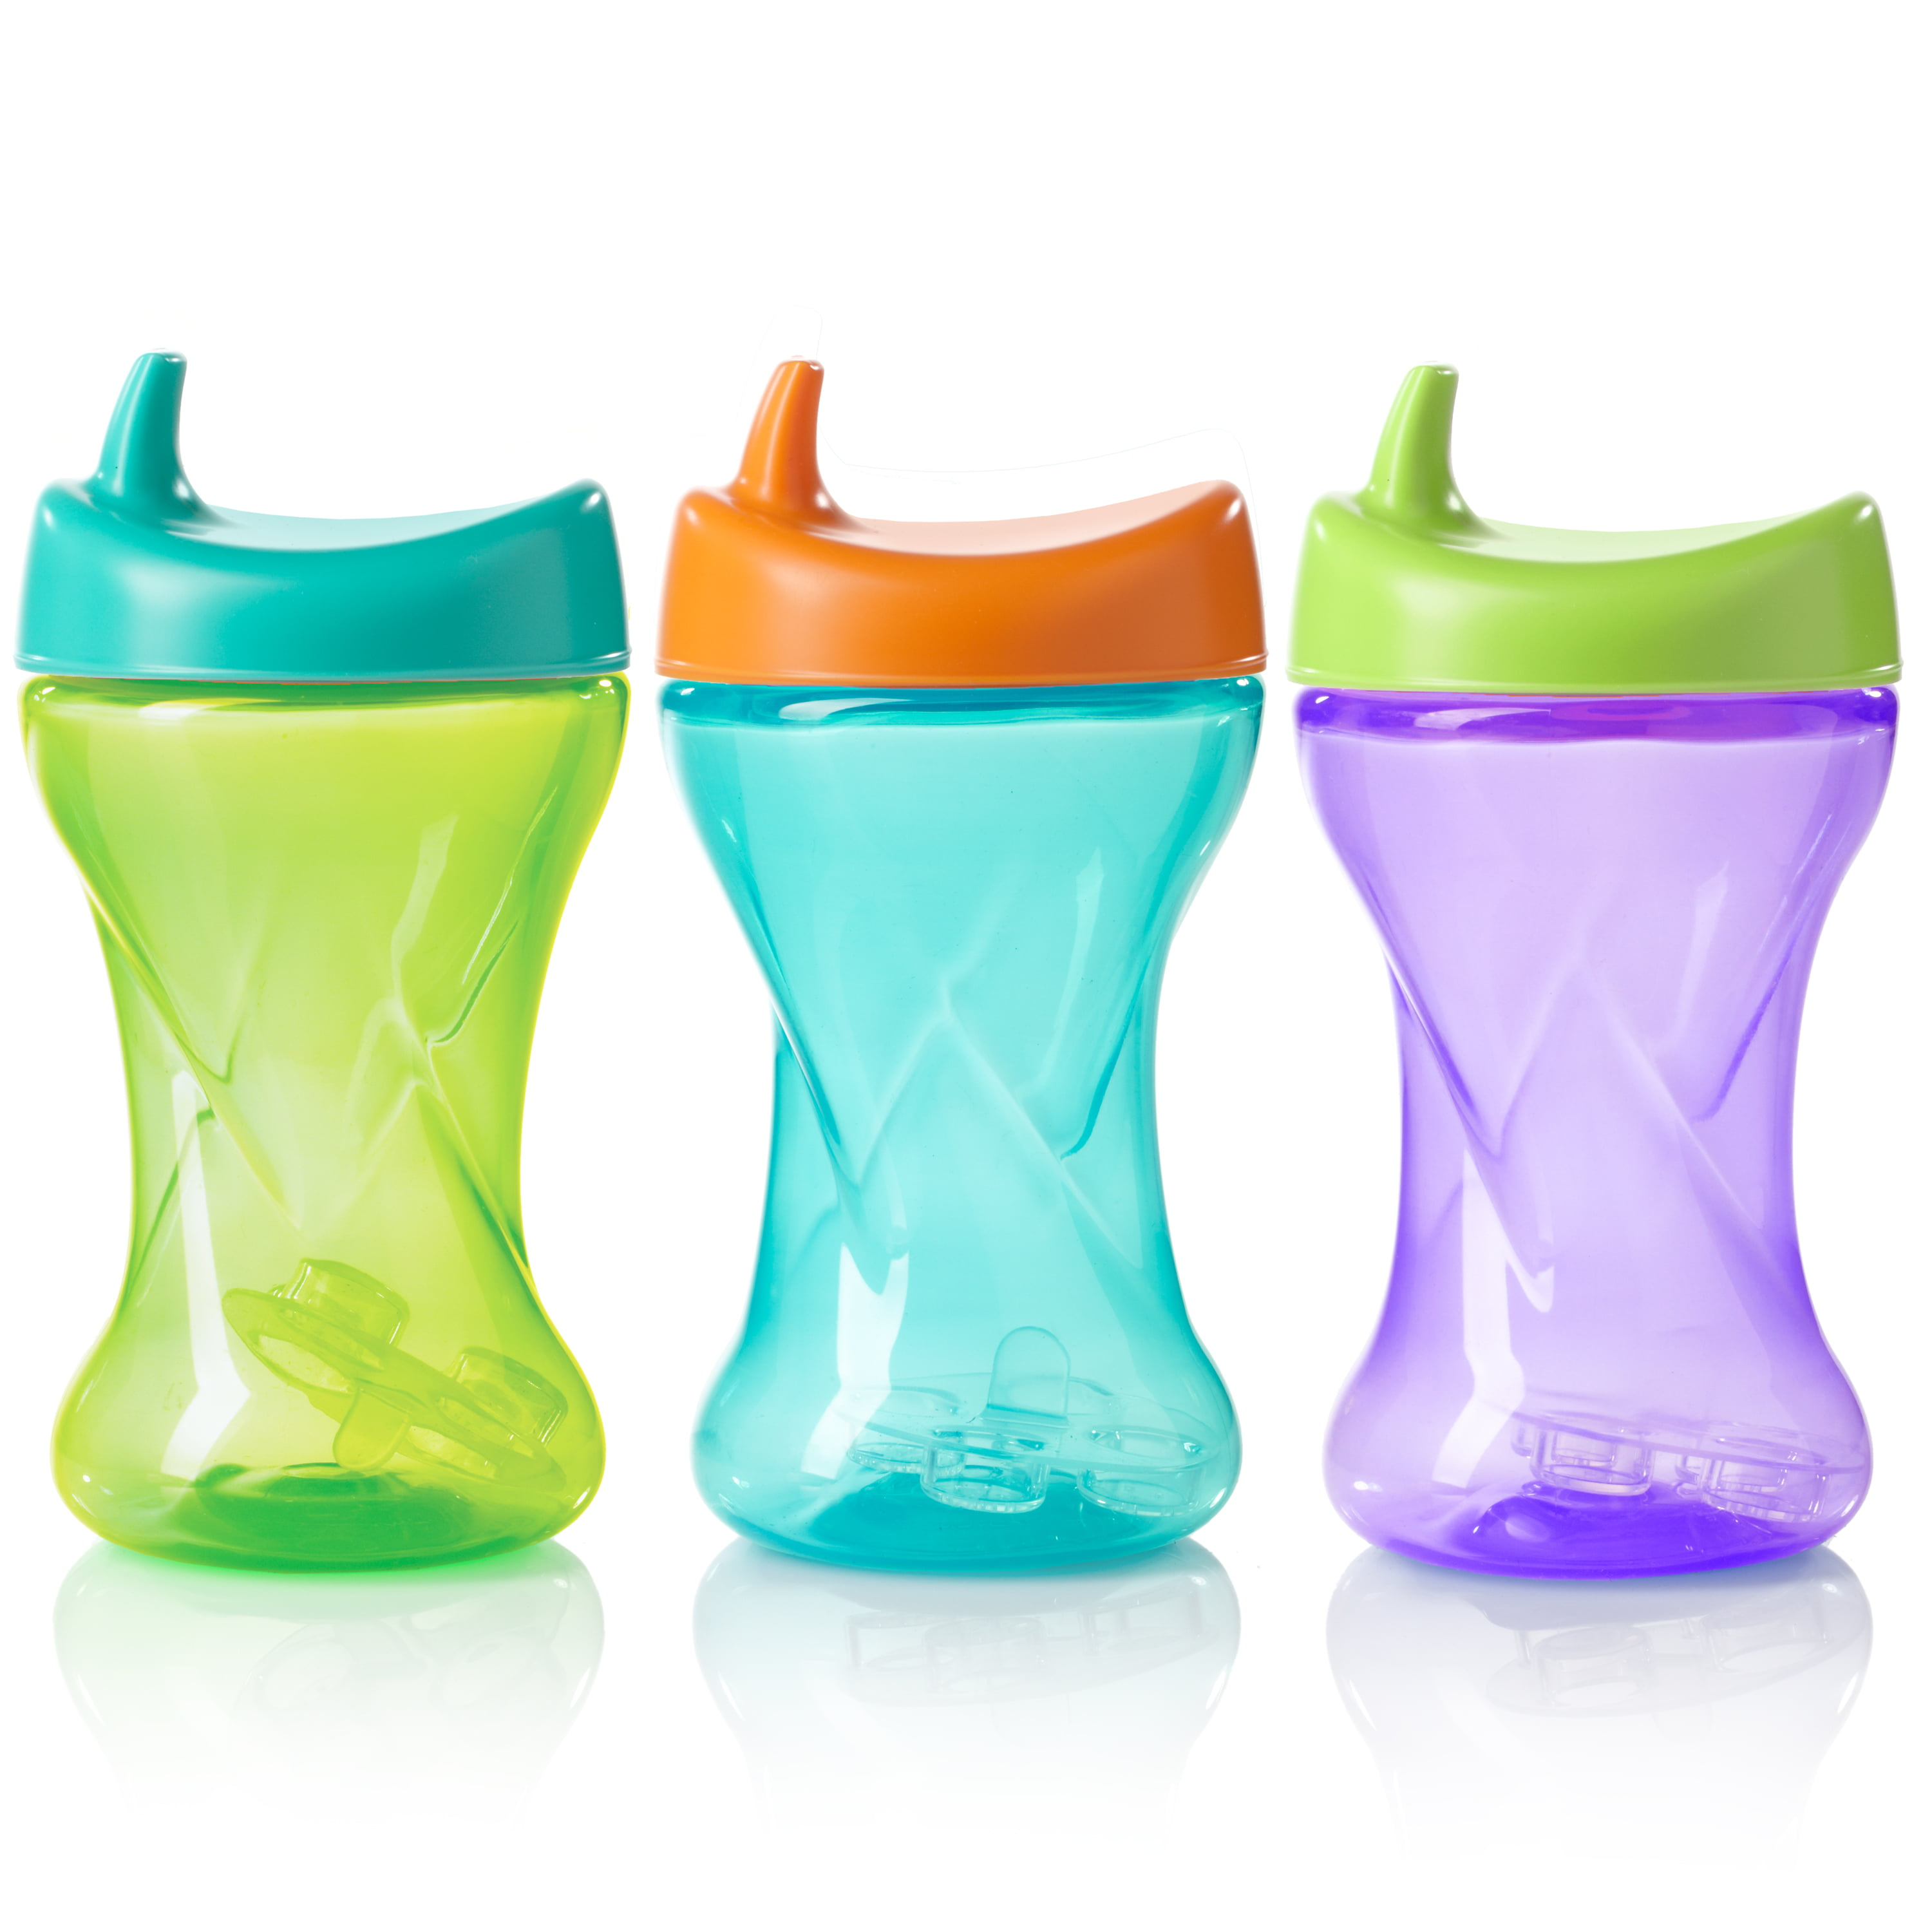 Evenflo Feeding Tripleflo Twist Hard Spout Sippy Cup with 1-Piece Silicone Valve 10oz, Assorted, 3pk by Evenflo